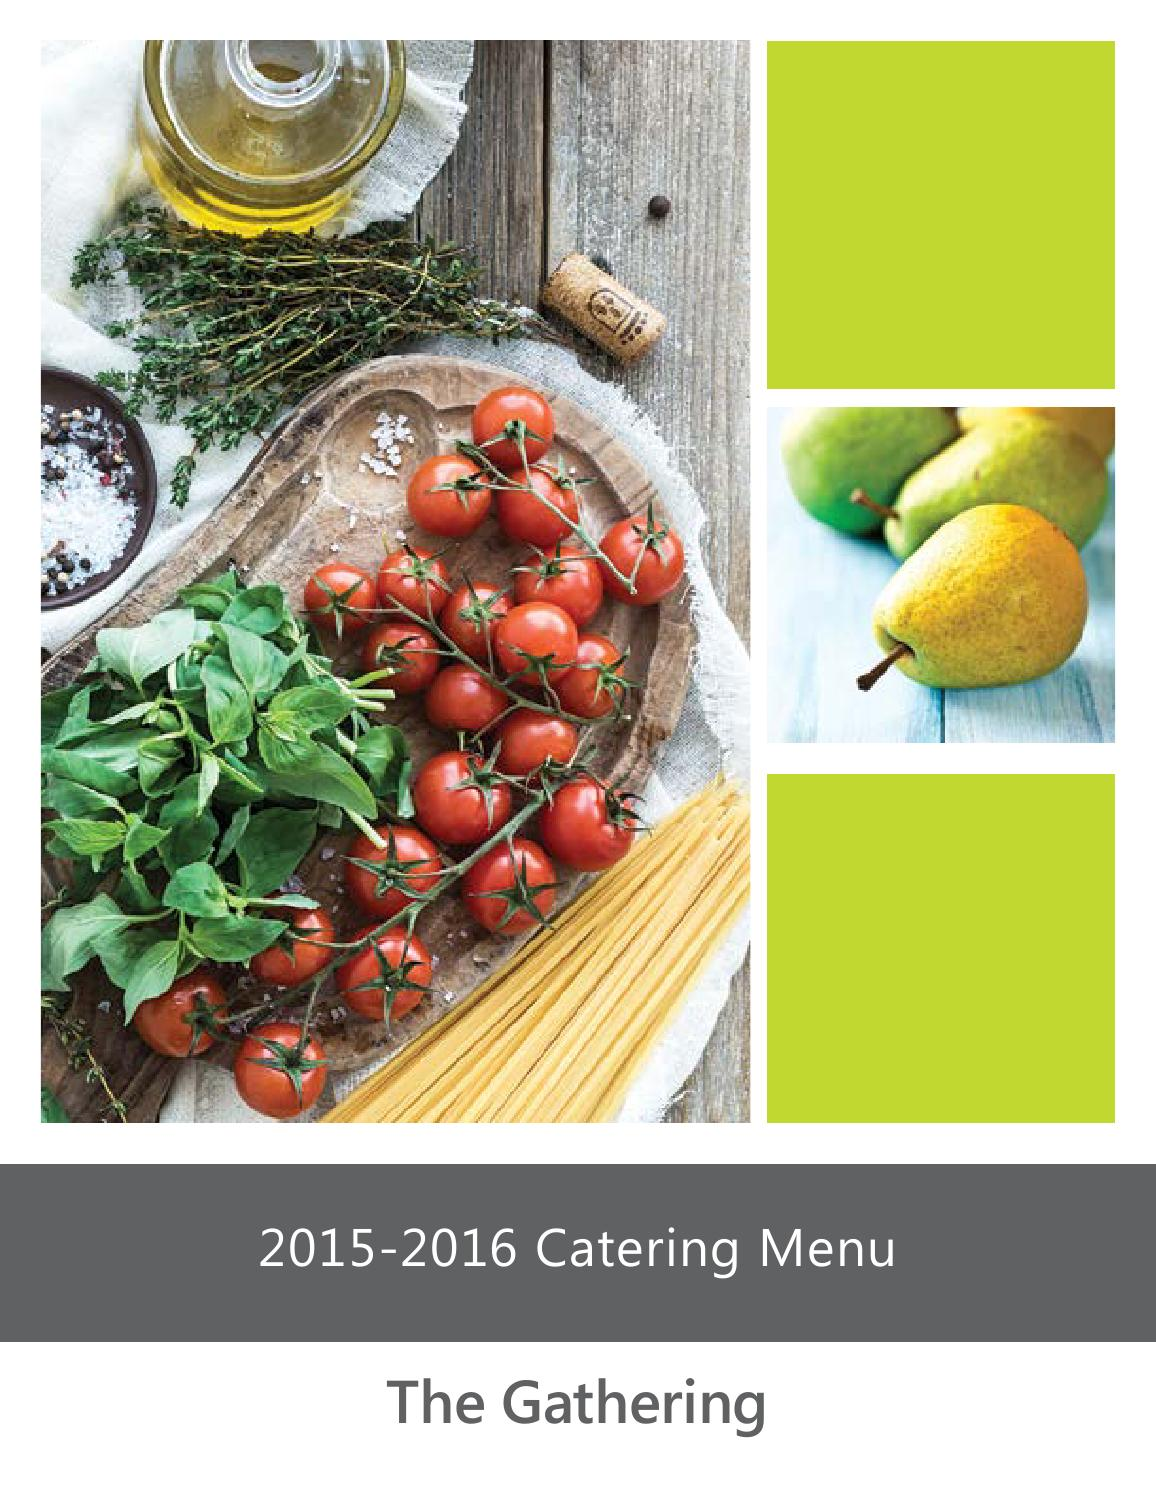 Chartwells Catering Guide 2016 by Chartwells at Schreiner ...